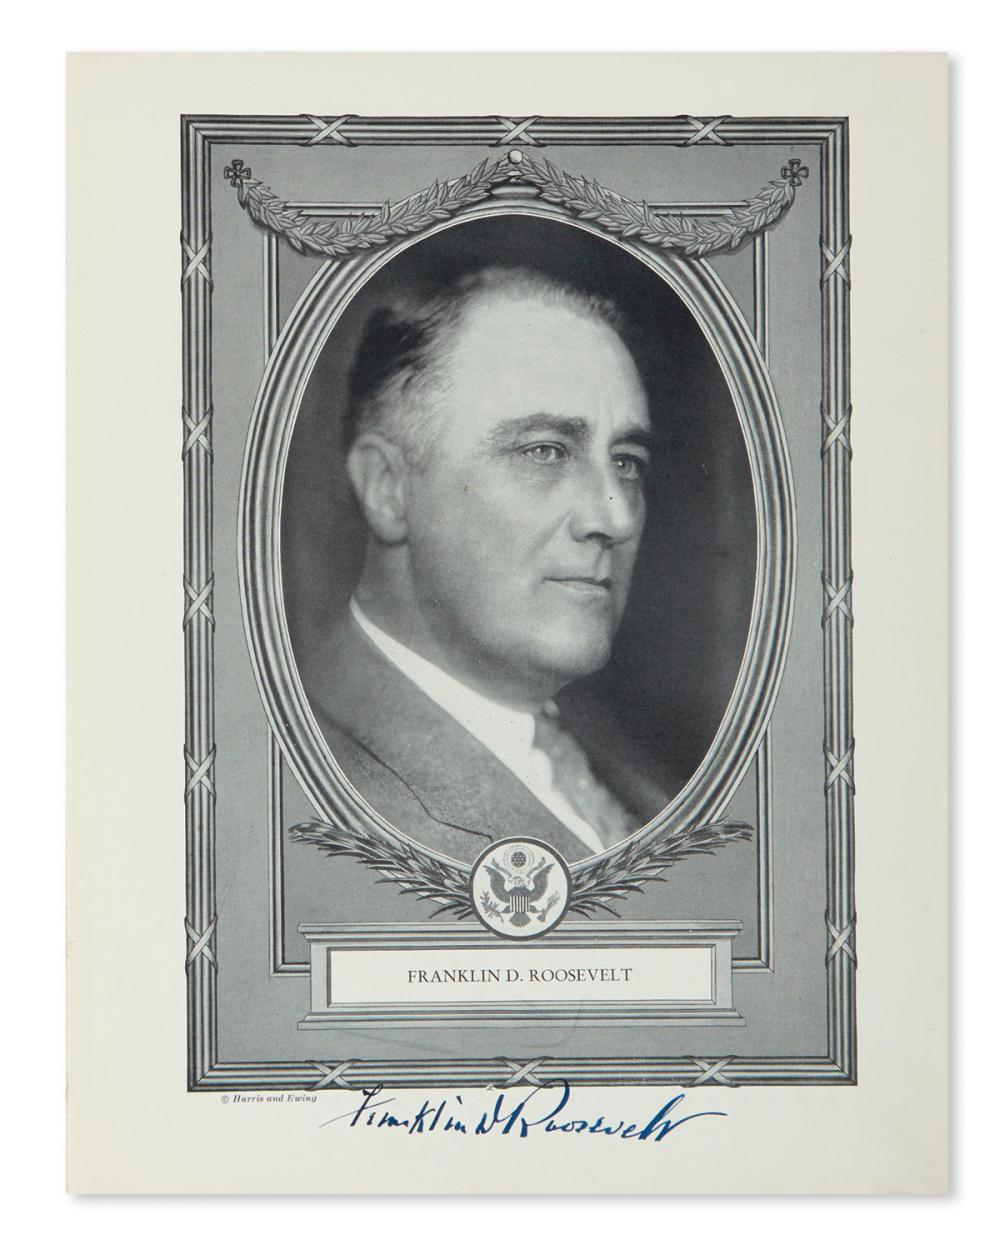 ROOSEVELT, FRANKLIN D. Official Program of the Inaugural Ceremonies. Signed below his portrait on page 5.